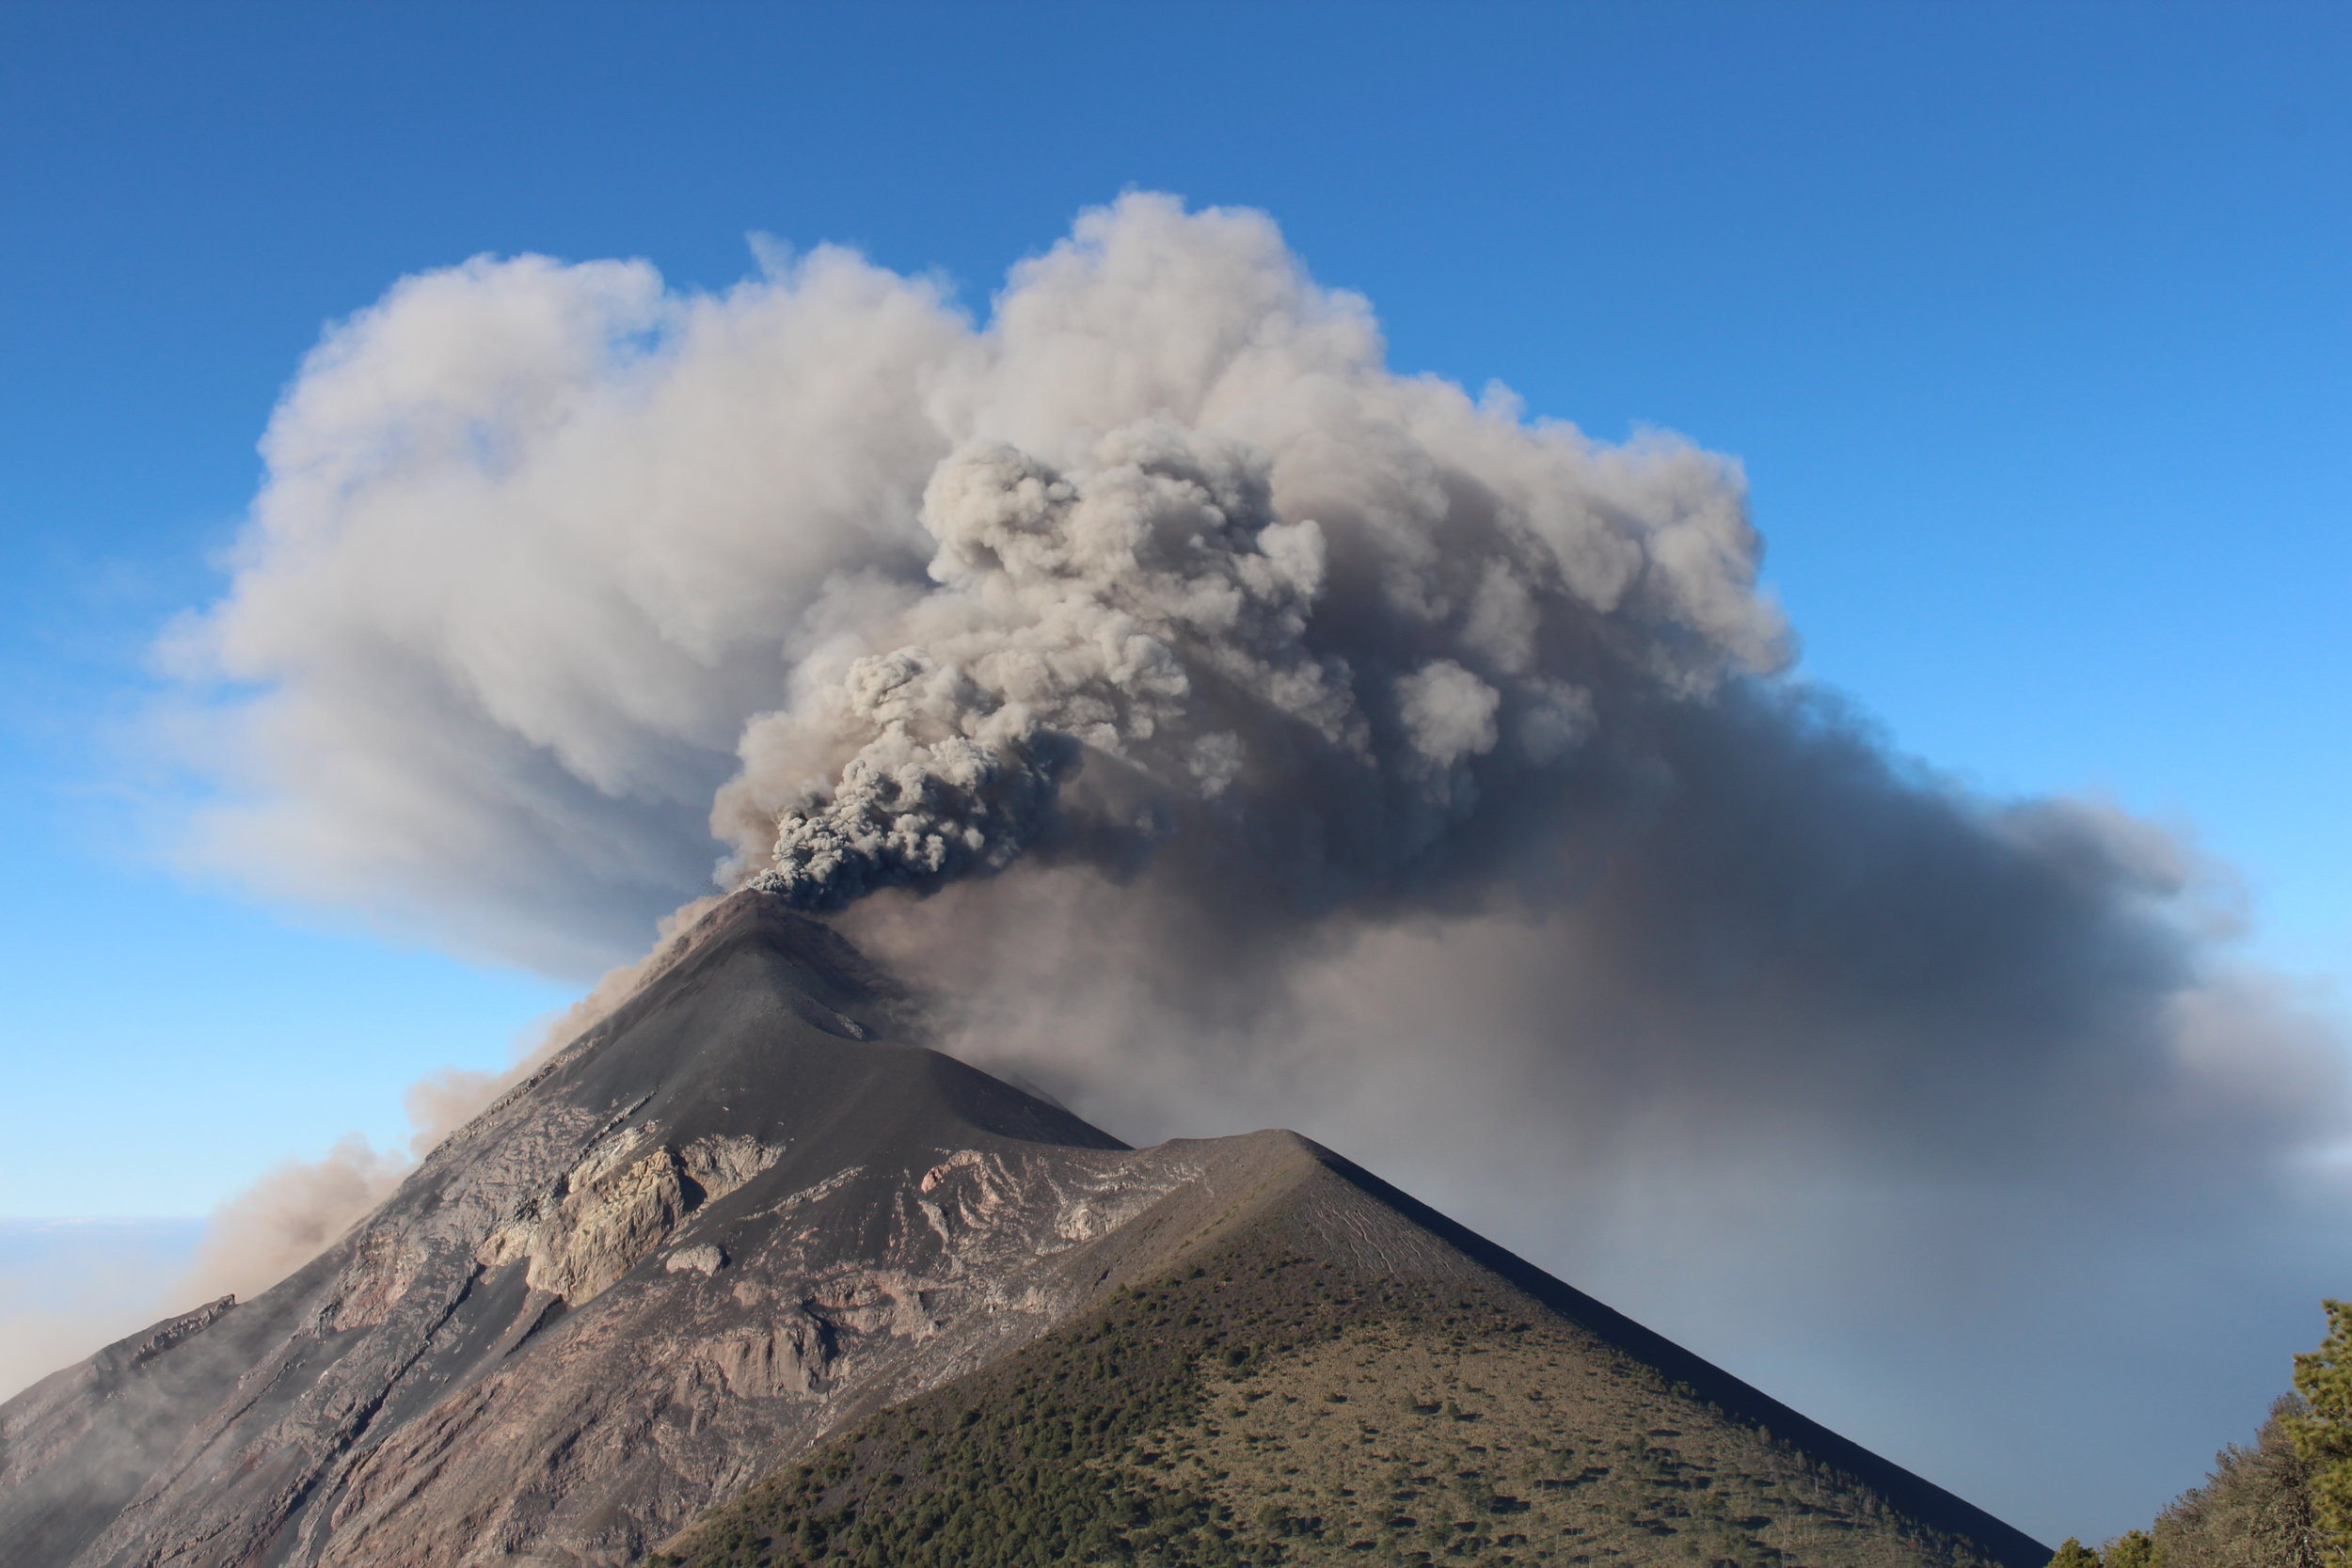 Fuego erupting by day